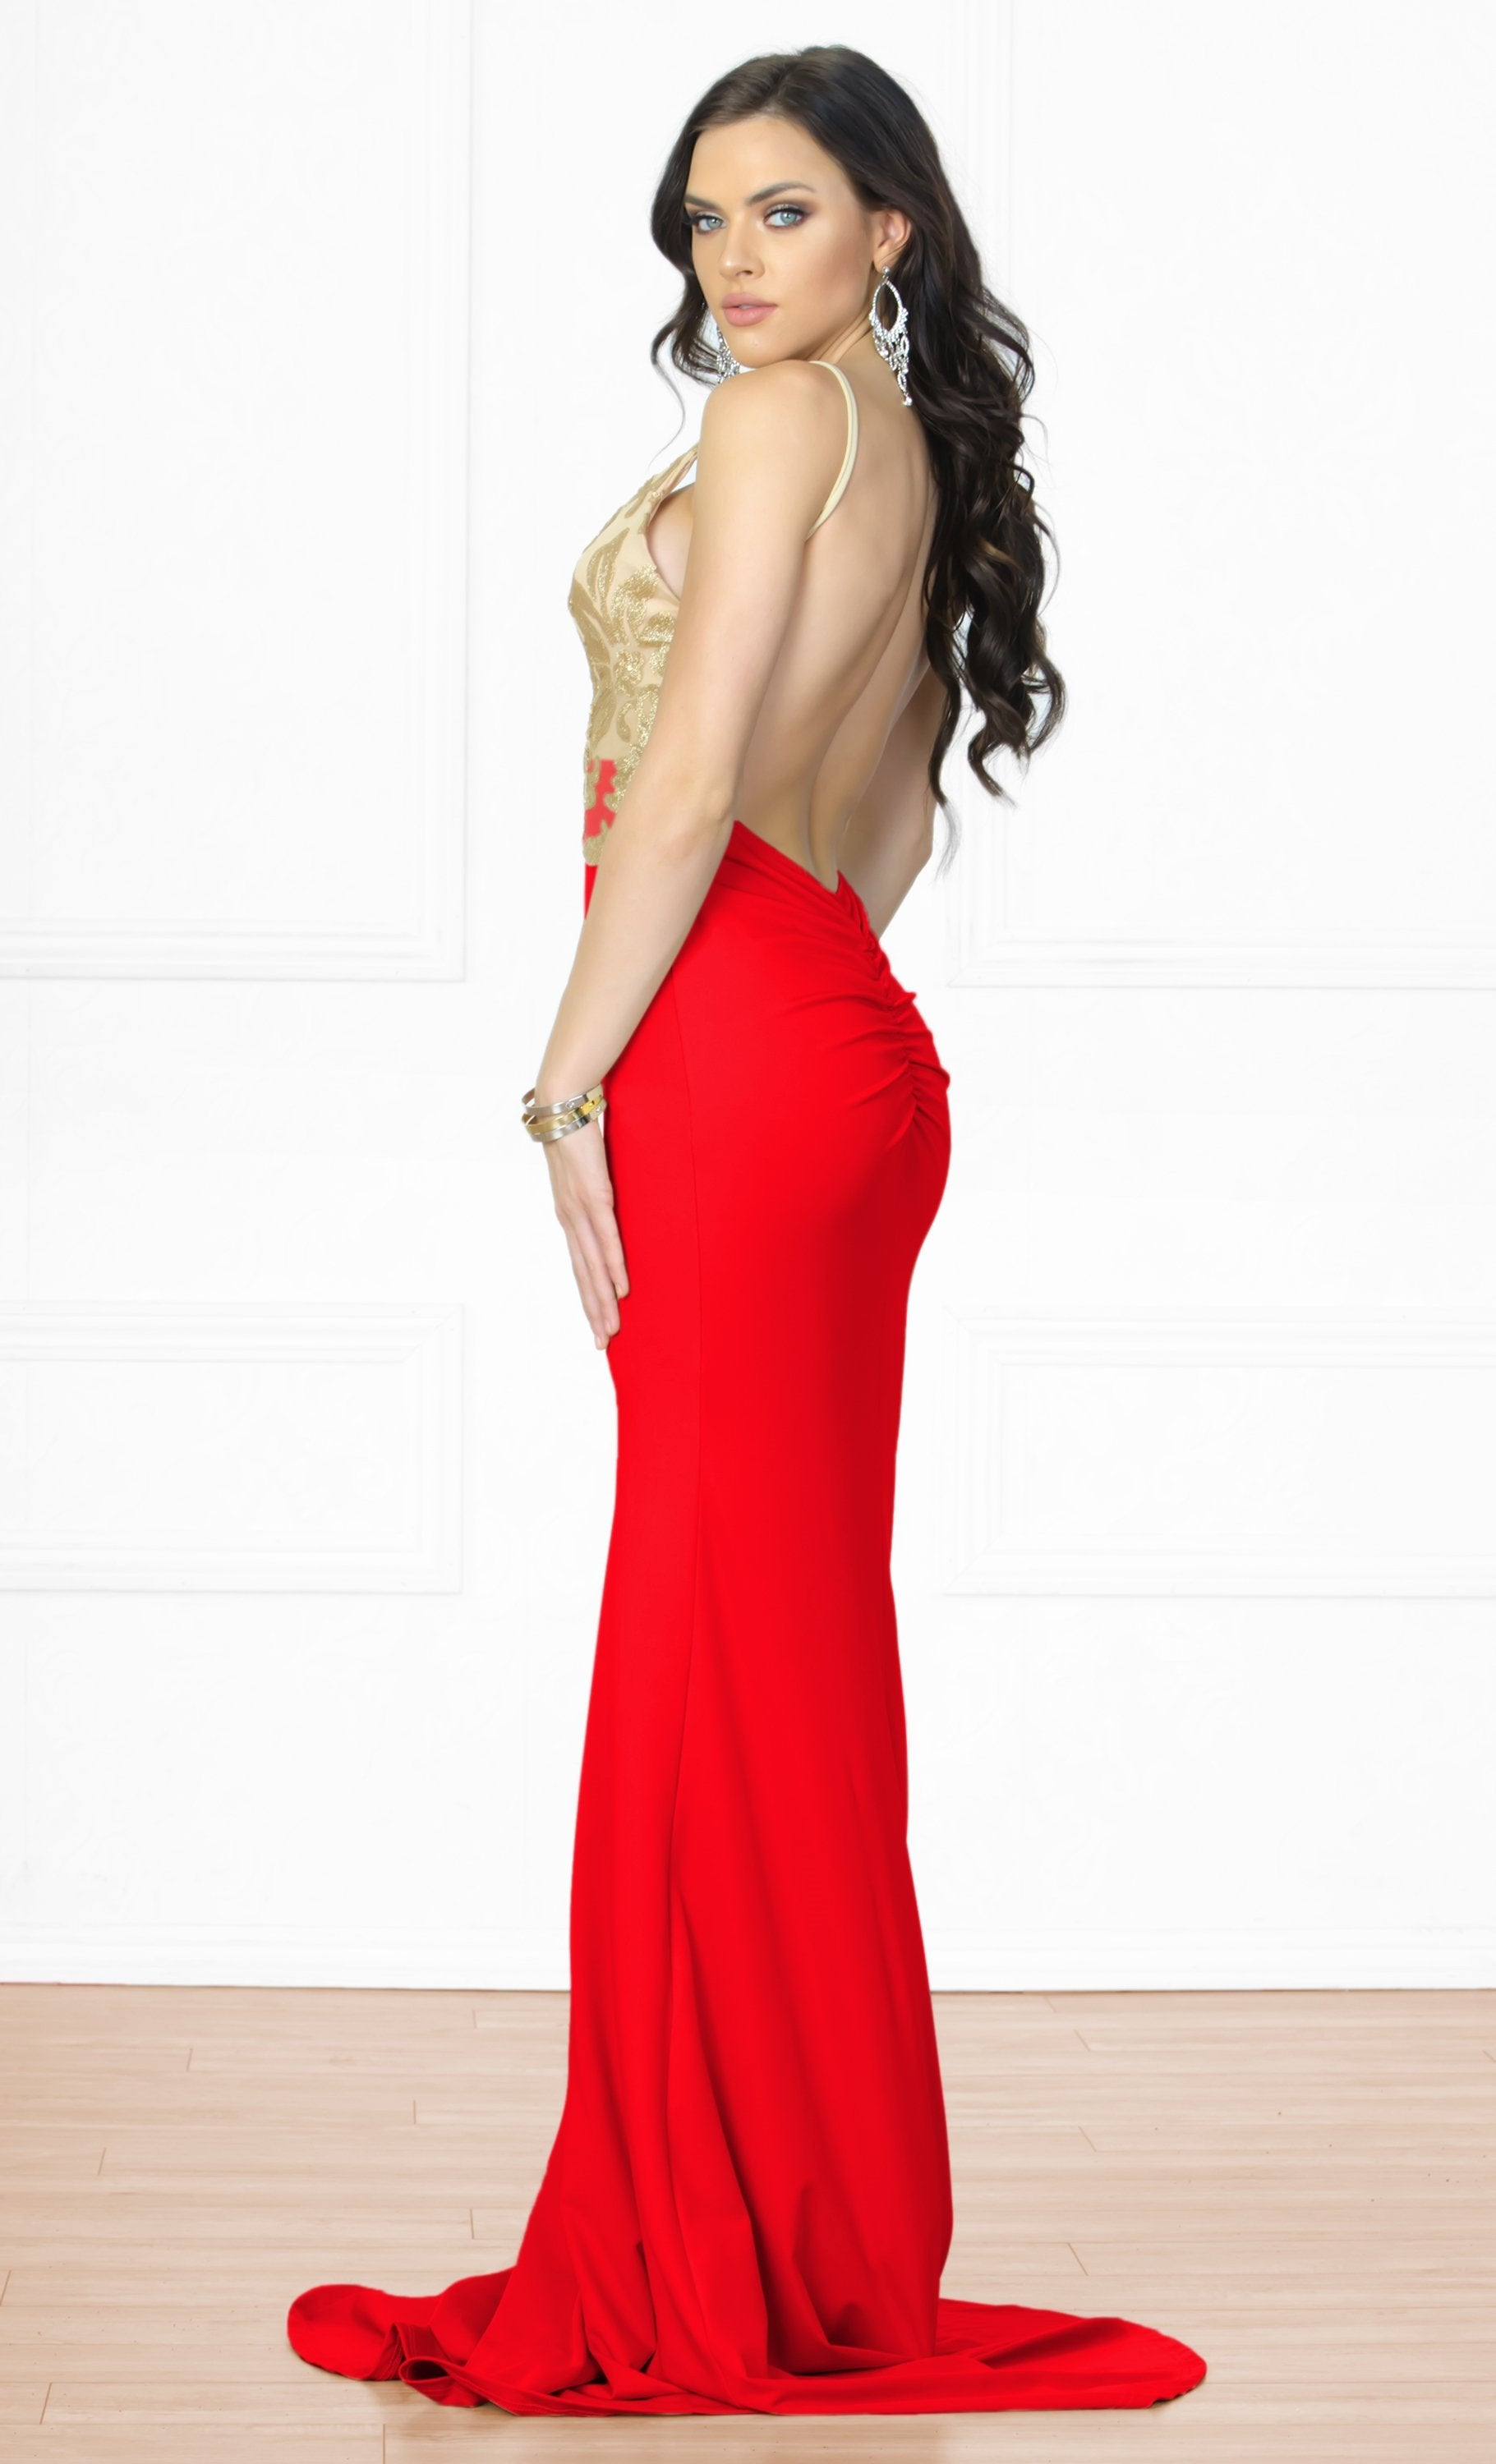 0dd6af43 Indie XO Always Amazing Red Gold Metallic Lace Sleeveless Spaghetti Strap  Plunge V Neck Backless Ruched